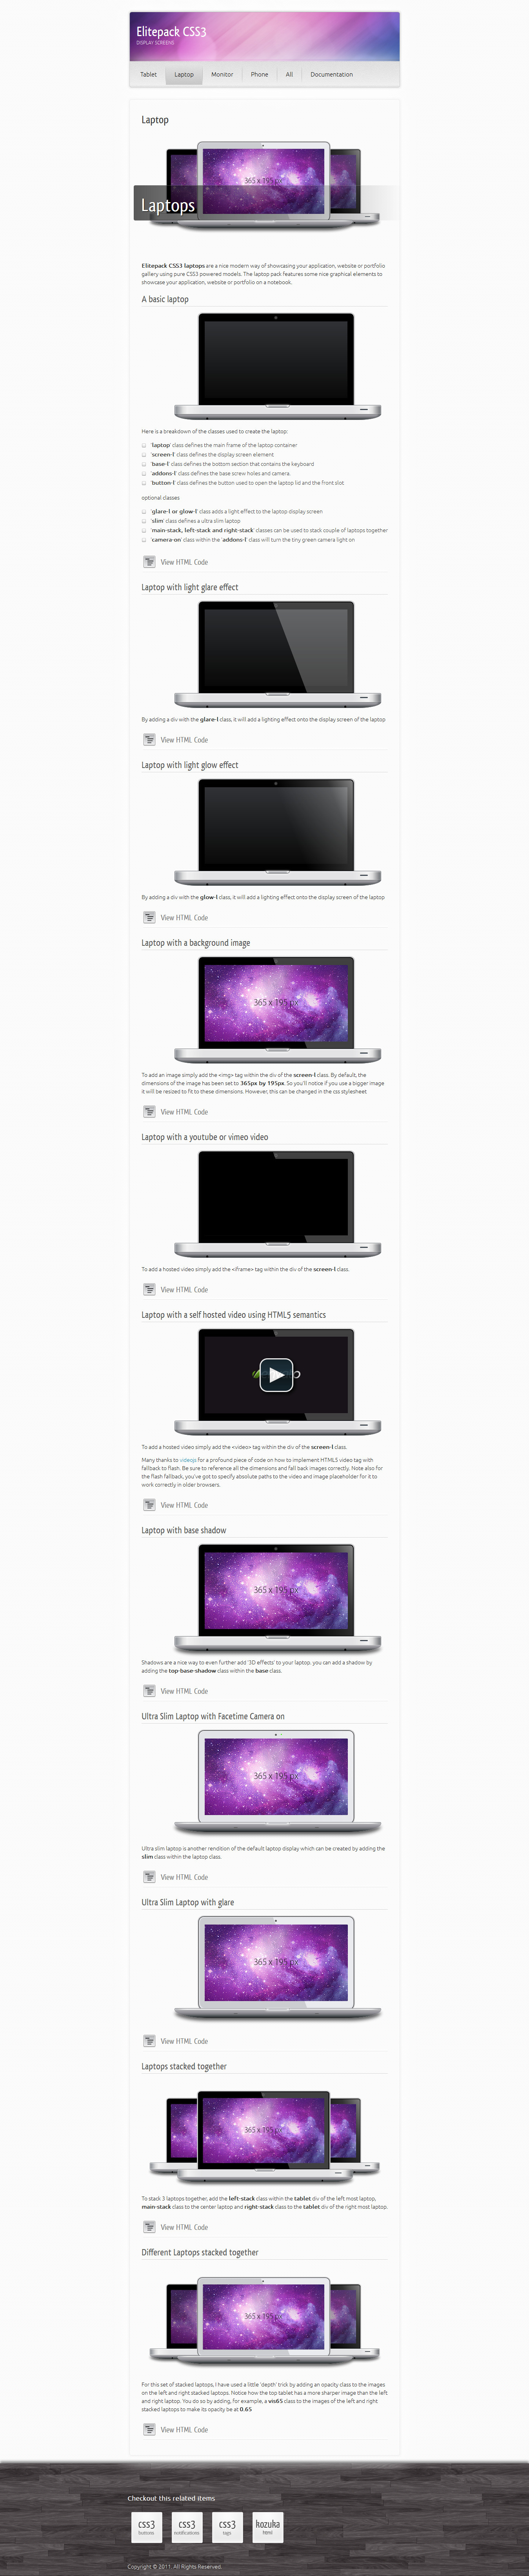 Elitepack CSS3 Display Screens - Screenshot 03 - Elitepack CSS3 Laptops in Firefox 6